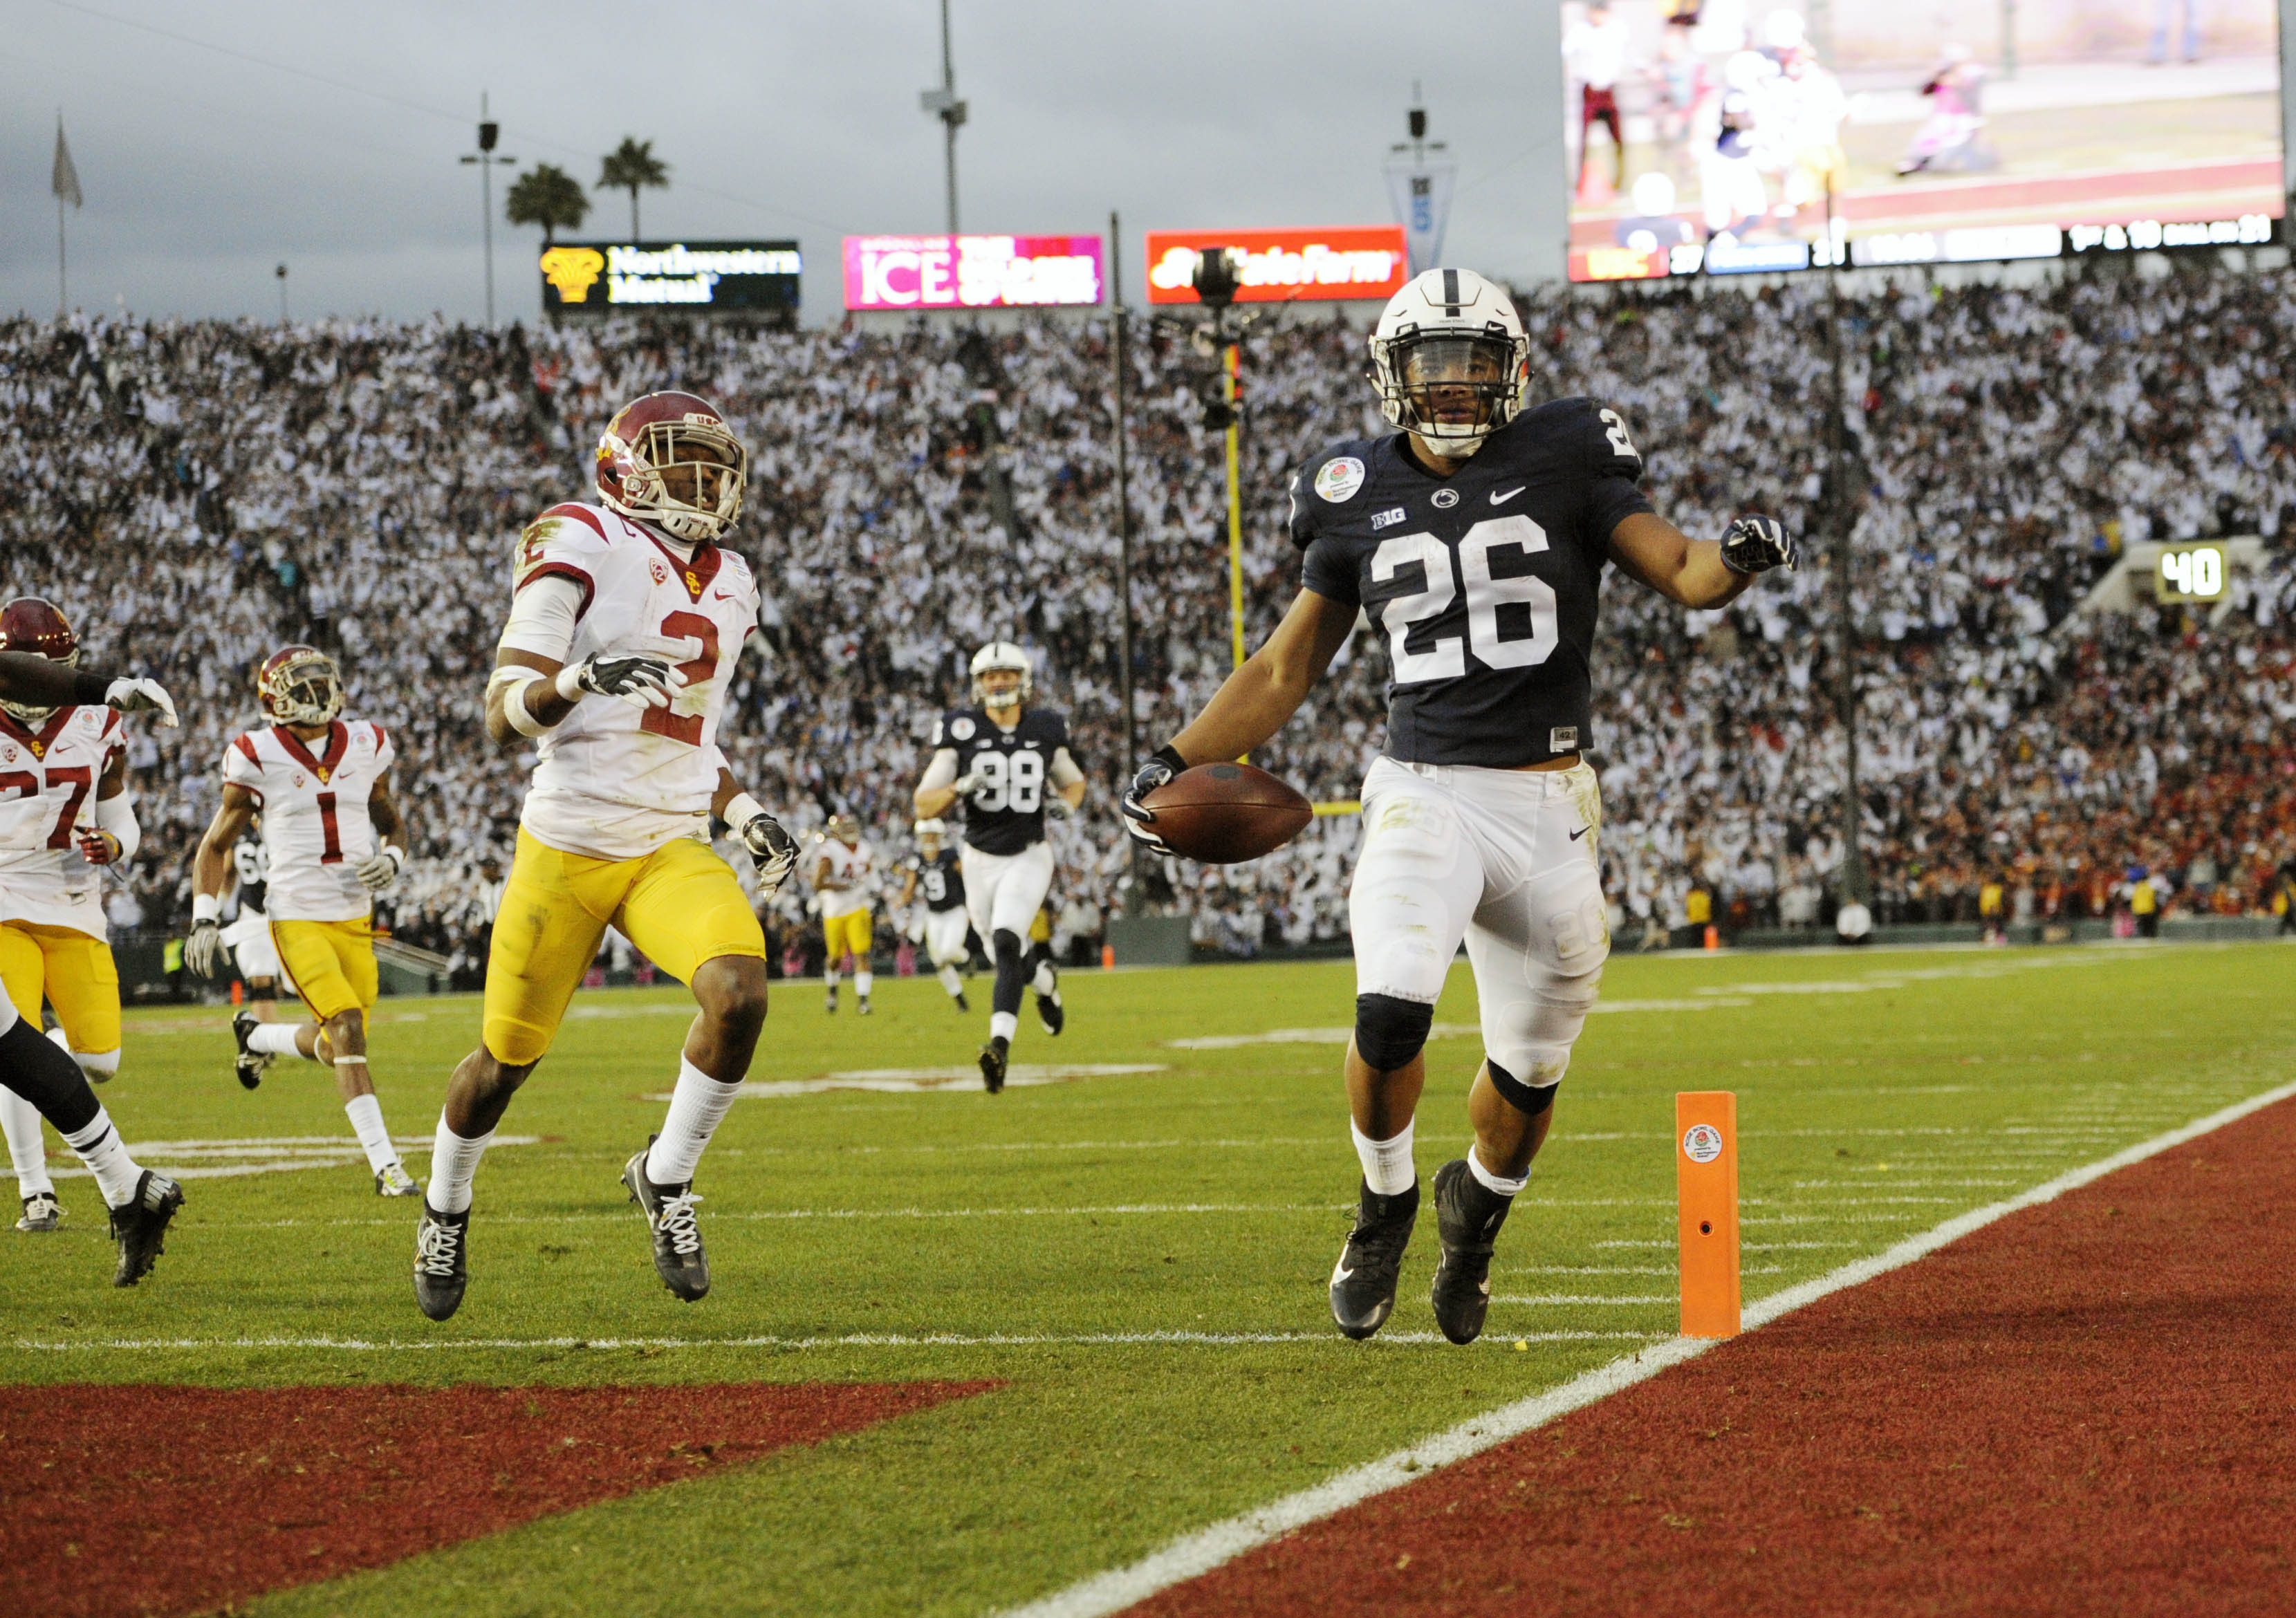 9784789-ncaa-football-rose-bowl-game-penn-state-vs-southern-california